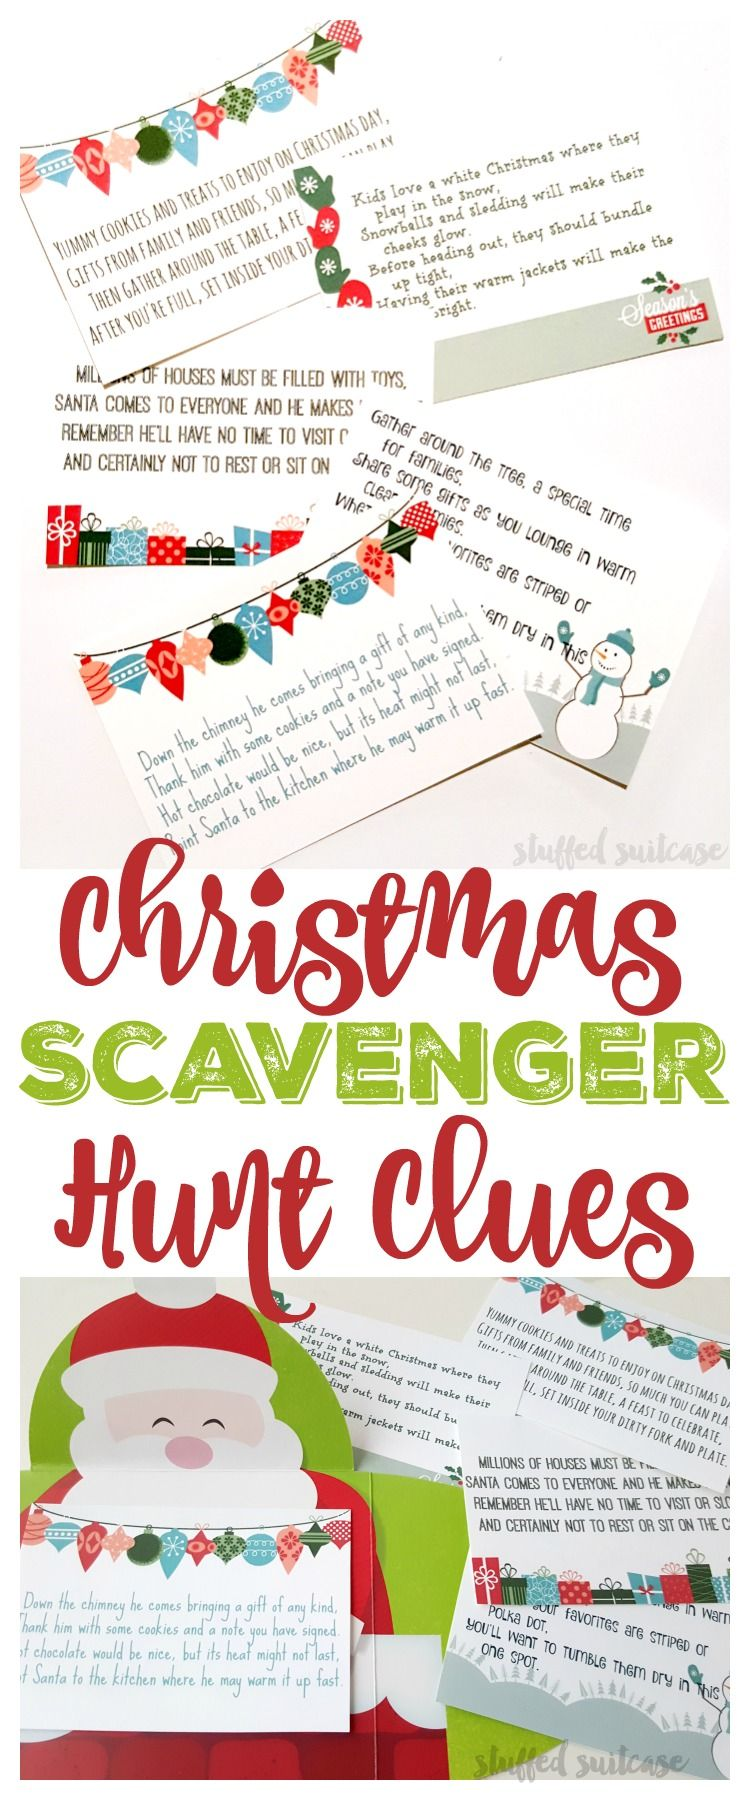 Christmas Scavenger Hunt Riddles and Clues | Christmas fun ideas ...